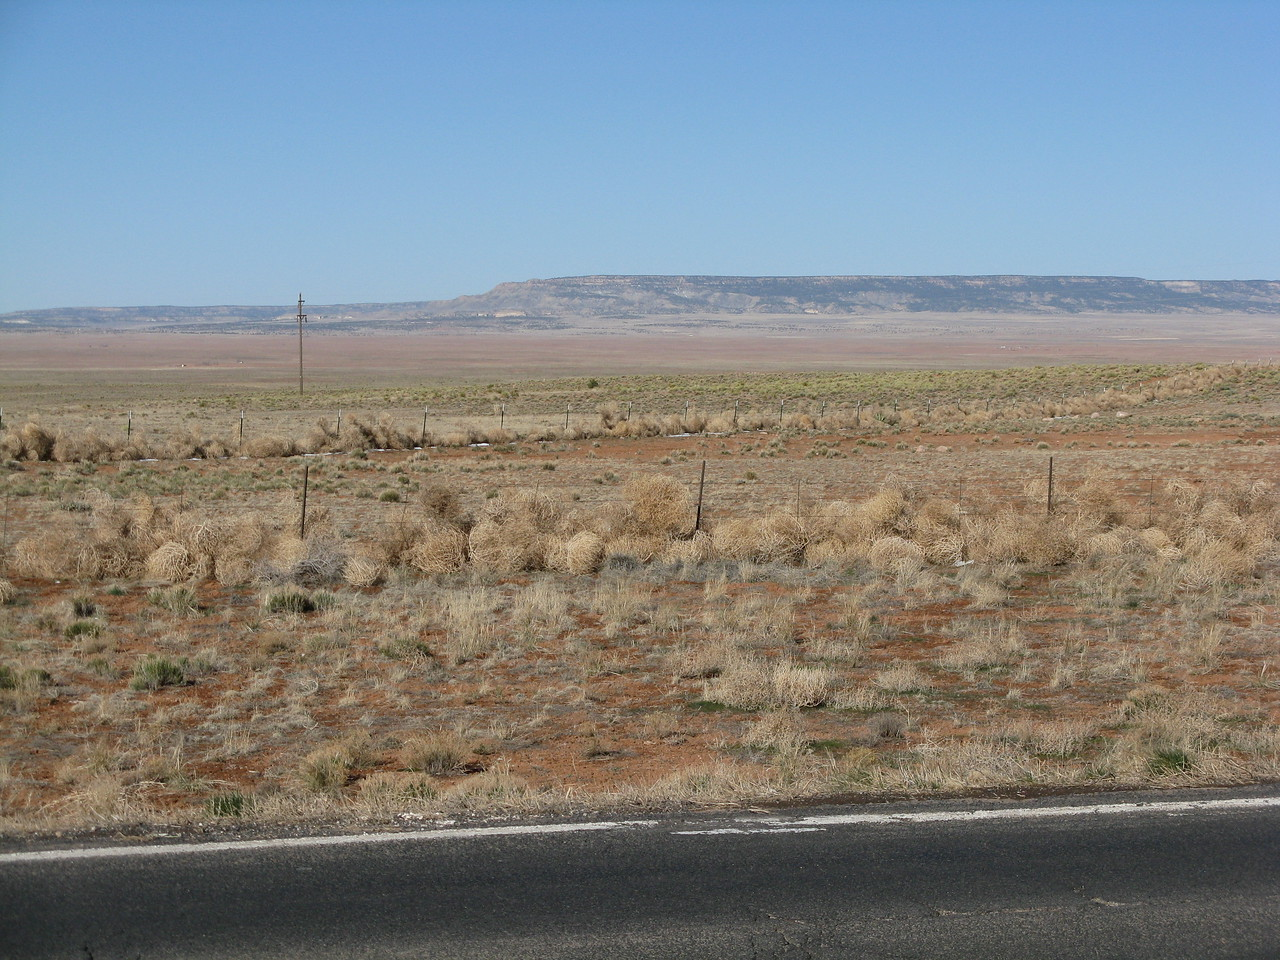 It is a sage brush desert all around, but you can see for tens of miles.